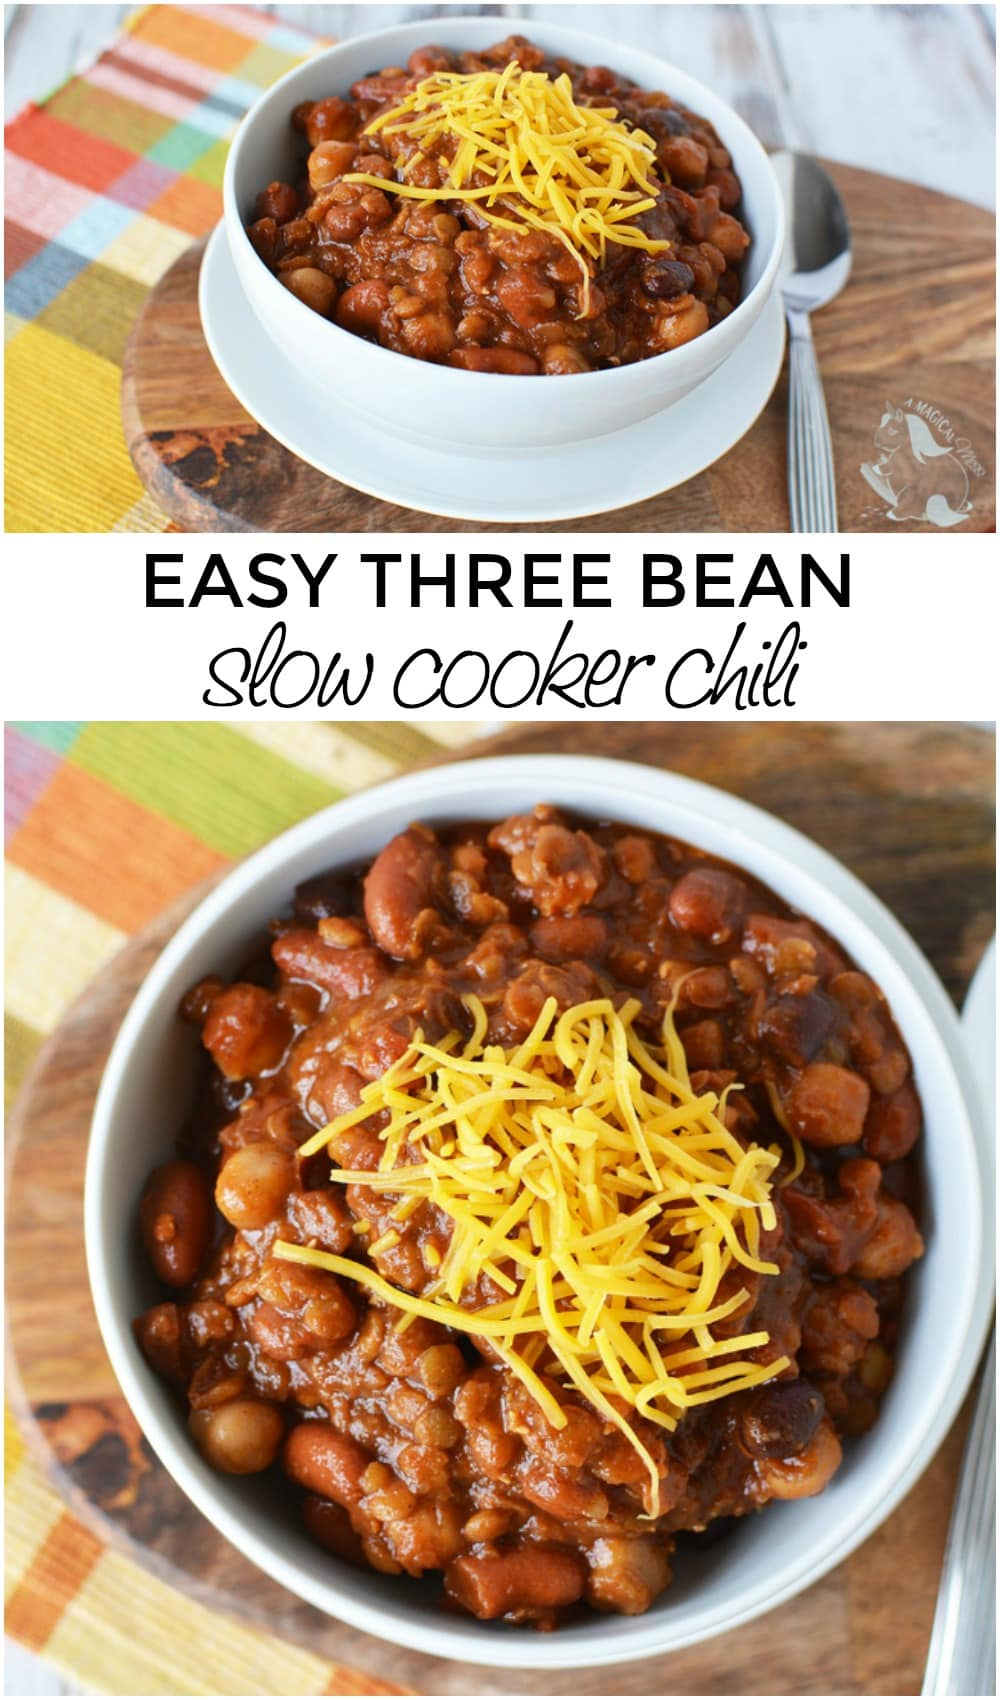 Easy Three Bean Slow Cooker Chili Recipe